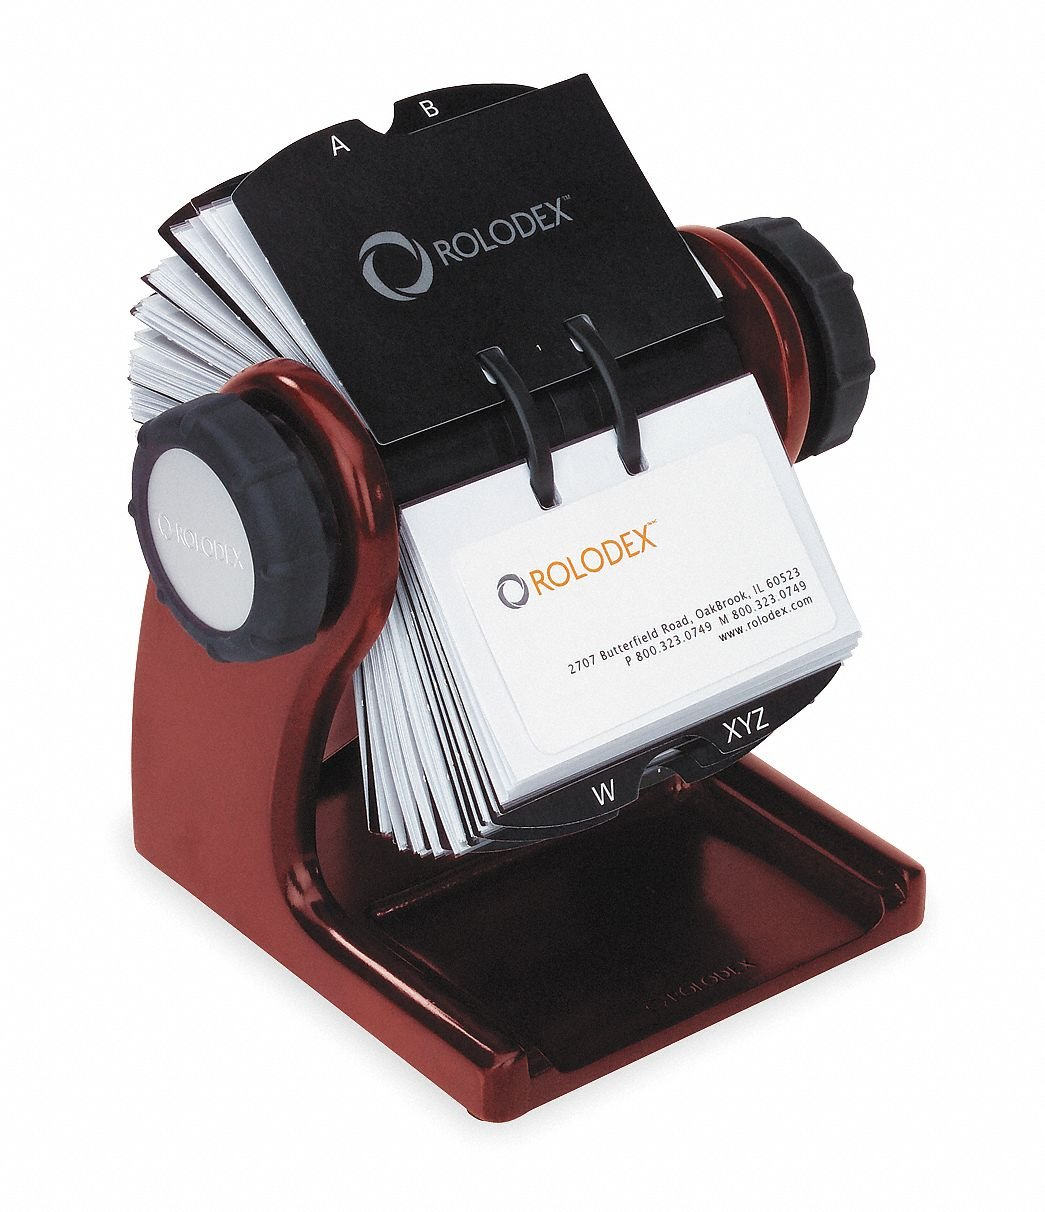 Wood 400 Ct ROLODEX Rotary Card File